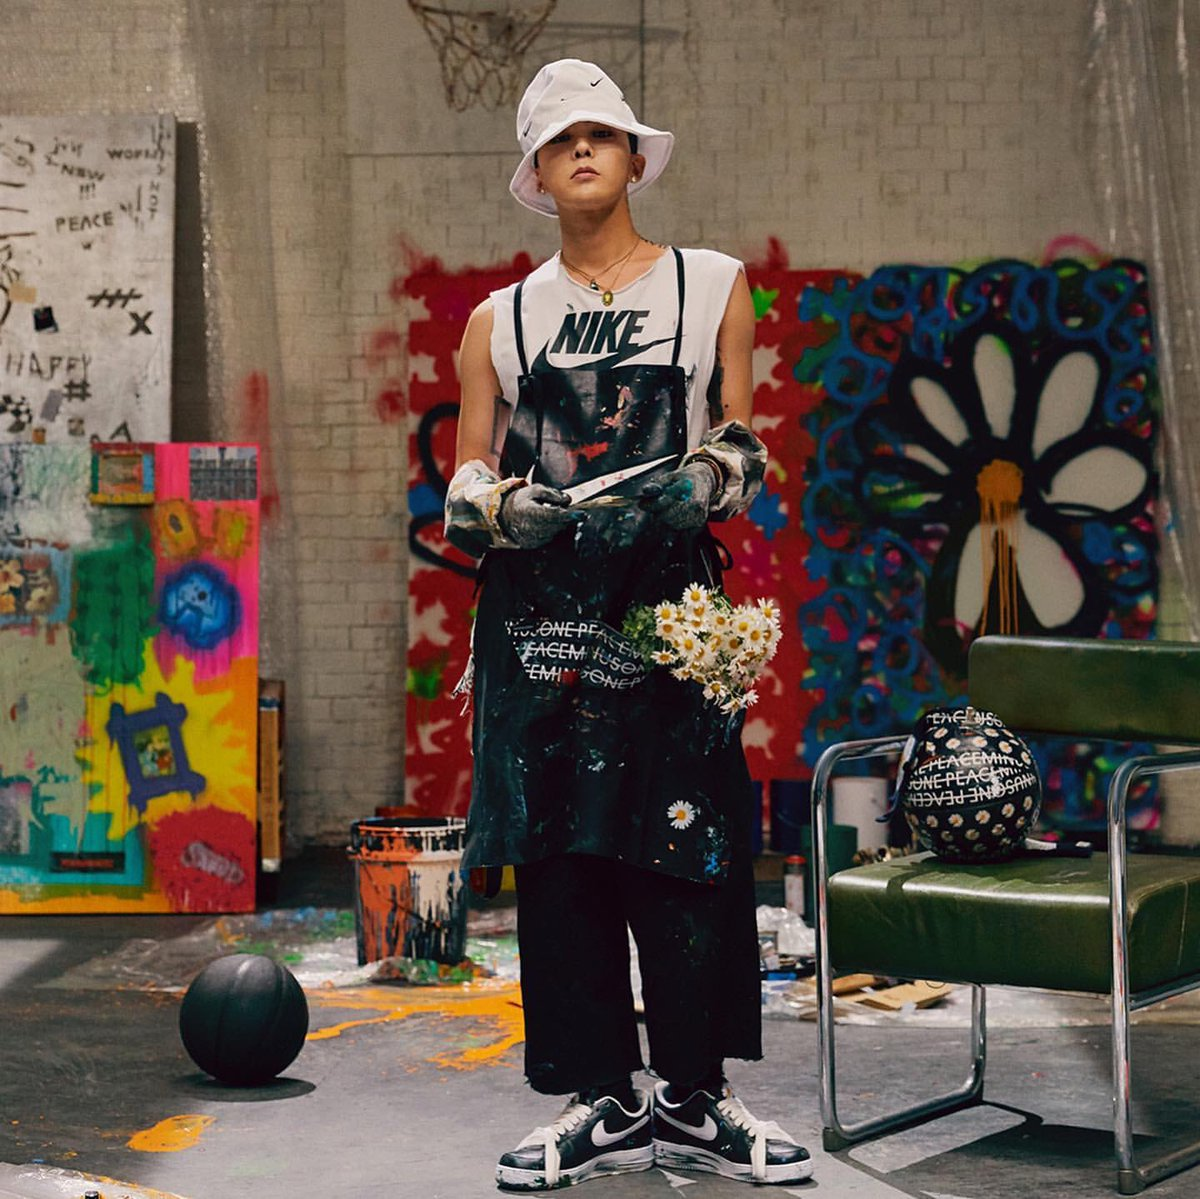 G-Dragon-PEACEMINUSONE-Nike-collaboration.